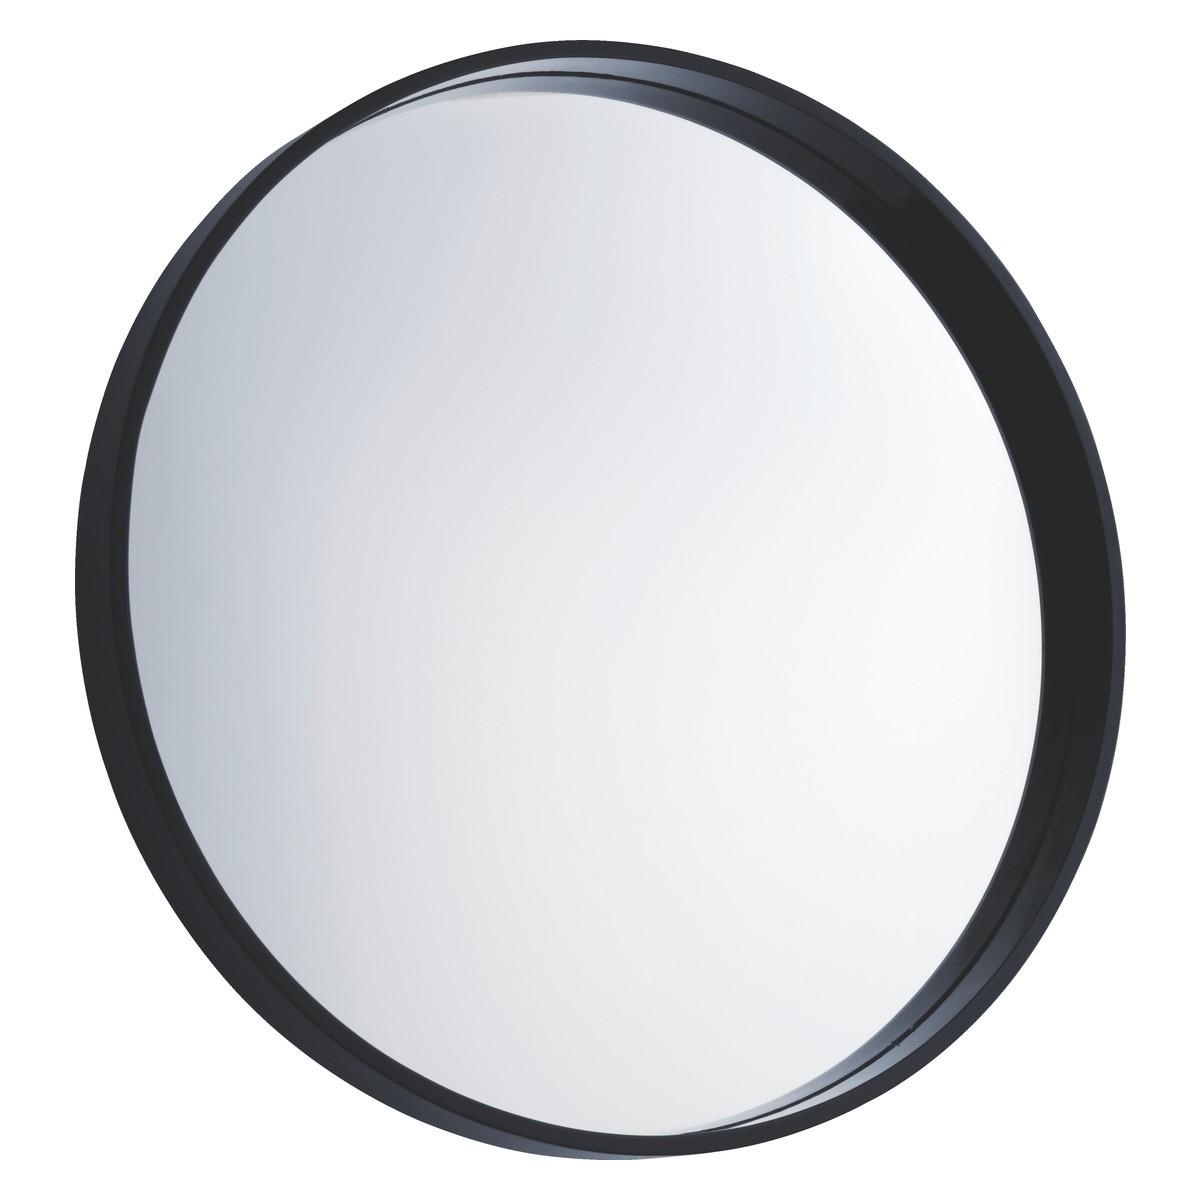 Large Round Mirror Uk | Vanity And Nightstand Decoration Throughout Large Round Black Mirror (Image 10 of 20)